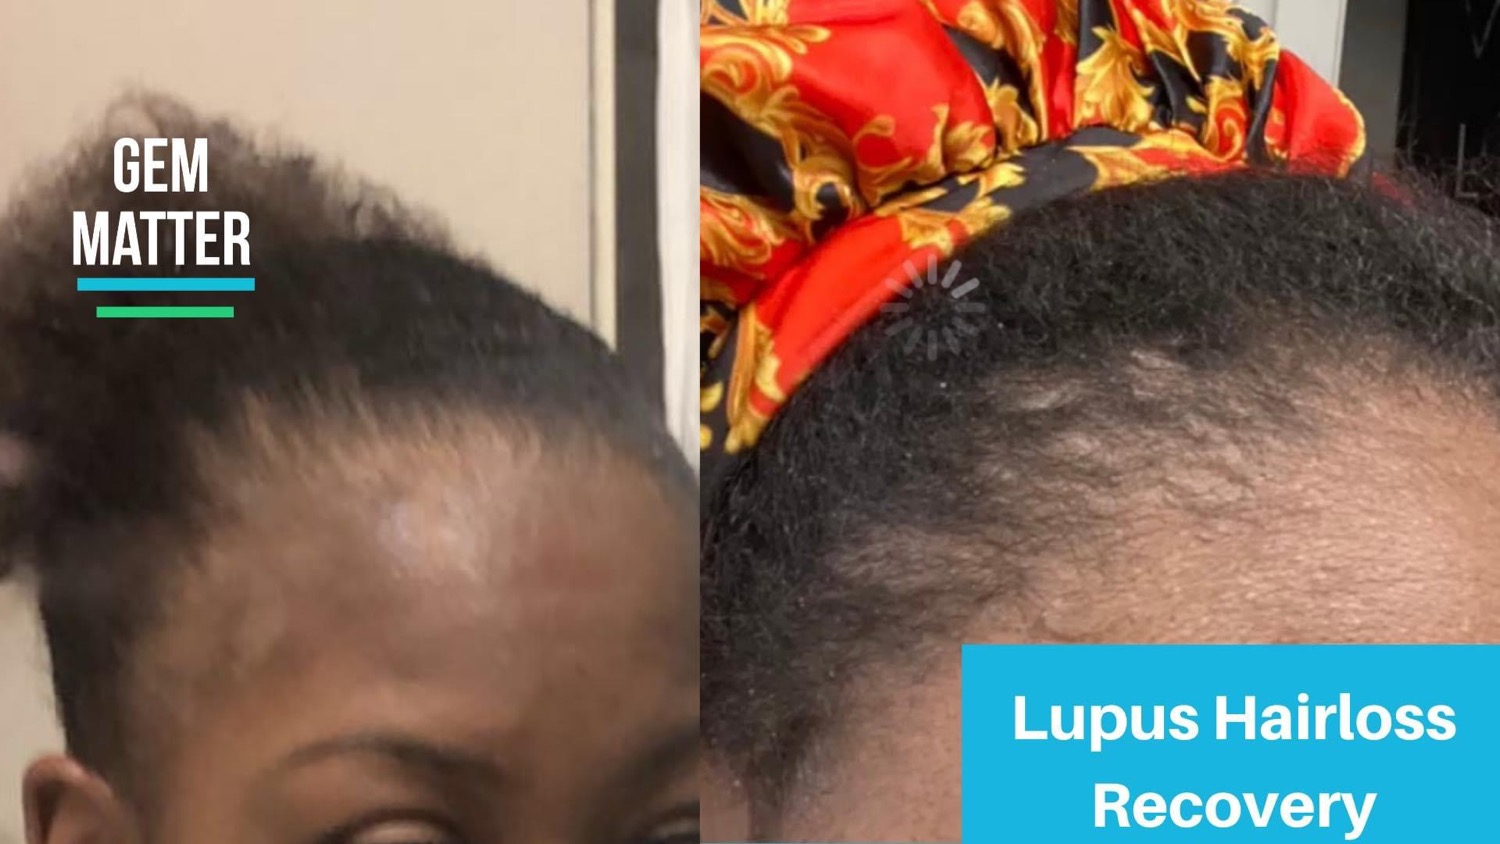 Hair growth after losing hair due to Lup